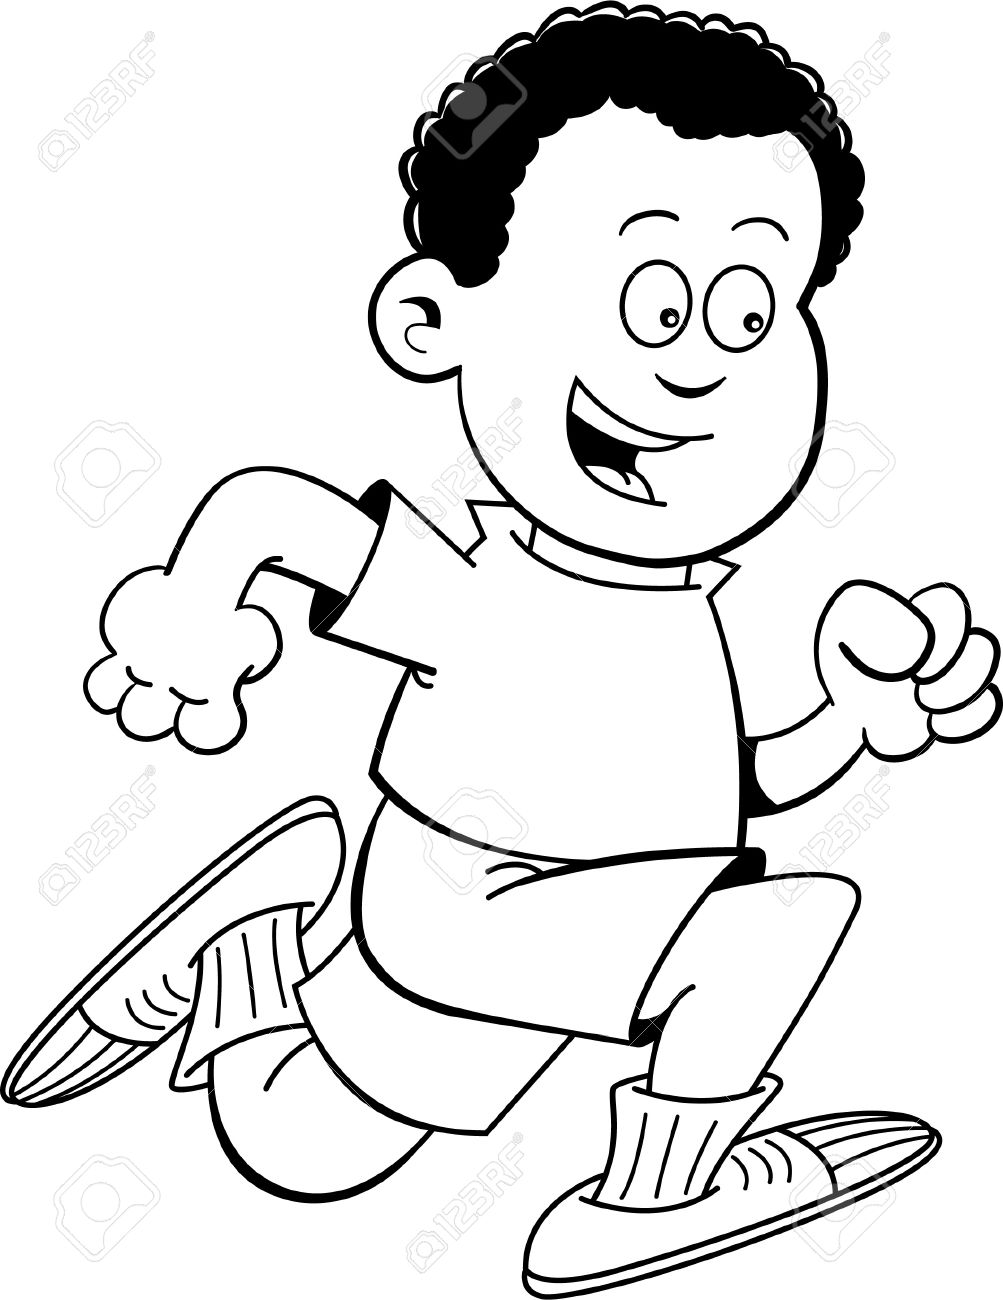 Black and white illustration of an african boy running stock vector 20778891